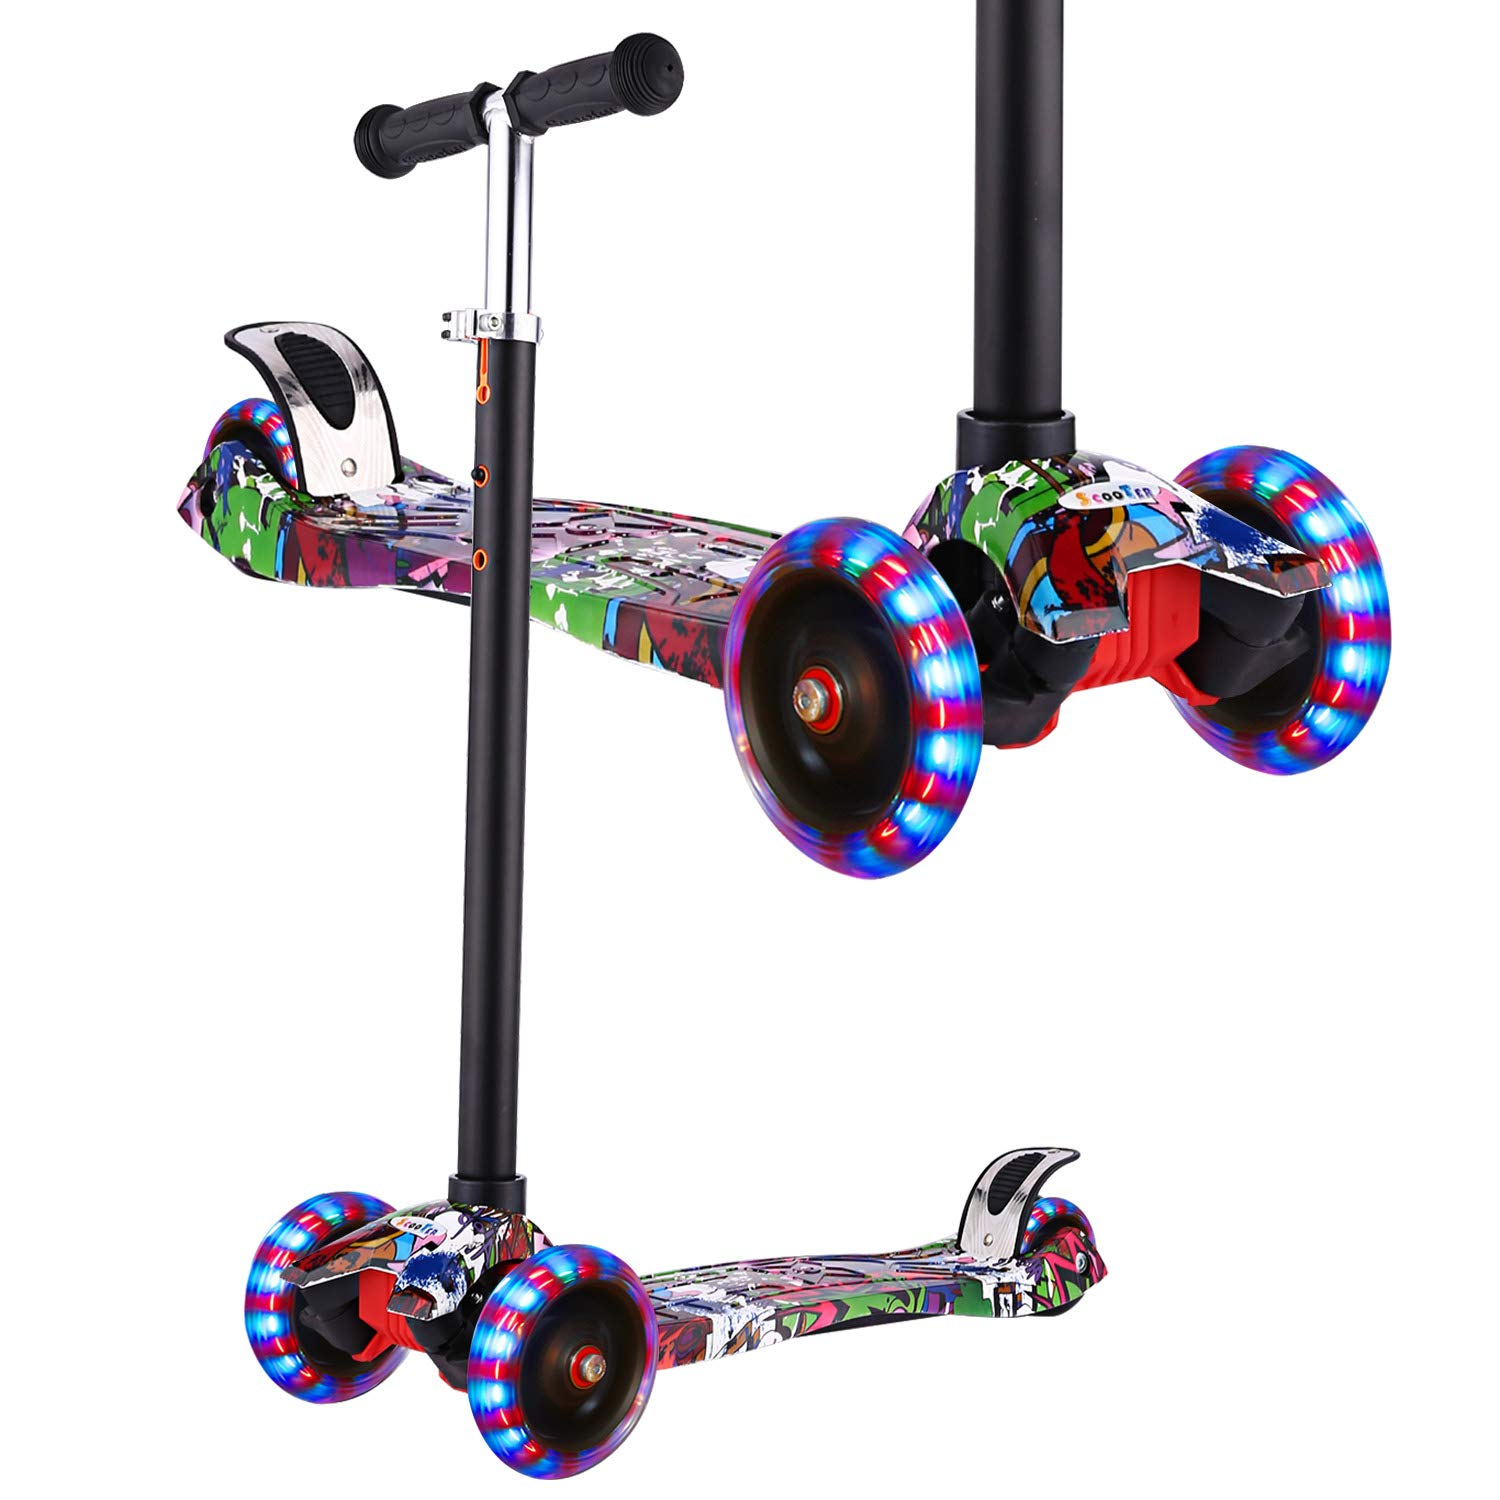 Hikole Scooter for Kids, Kick Scooter for Toddlers Girls & Boys with LED Light Up Scooters Wheels, Adjustable Height Scooter for Children Ages 3-12